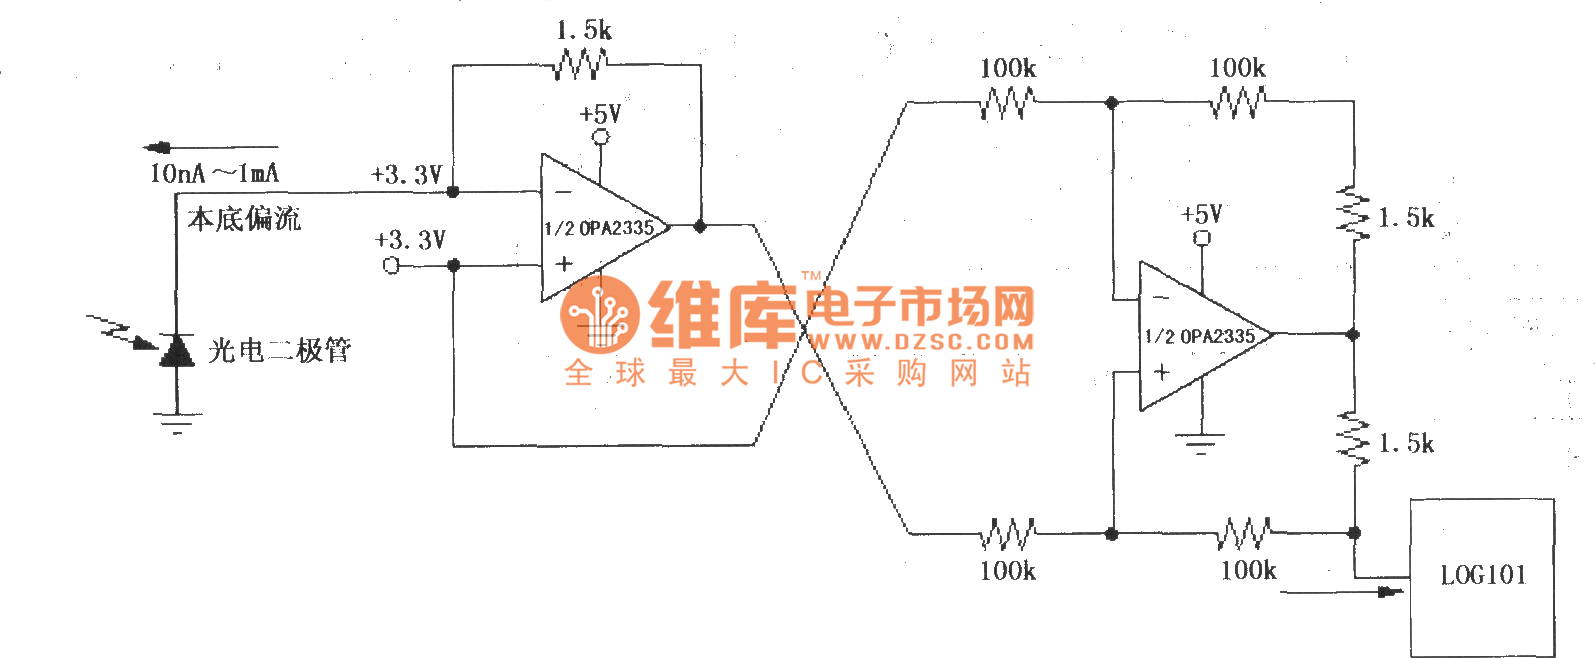 hight resolution of precision current inverter current source circuit 2 composed of log101 104 and op amp opa2335